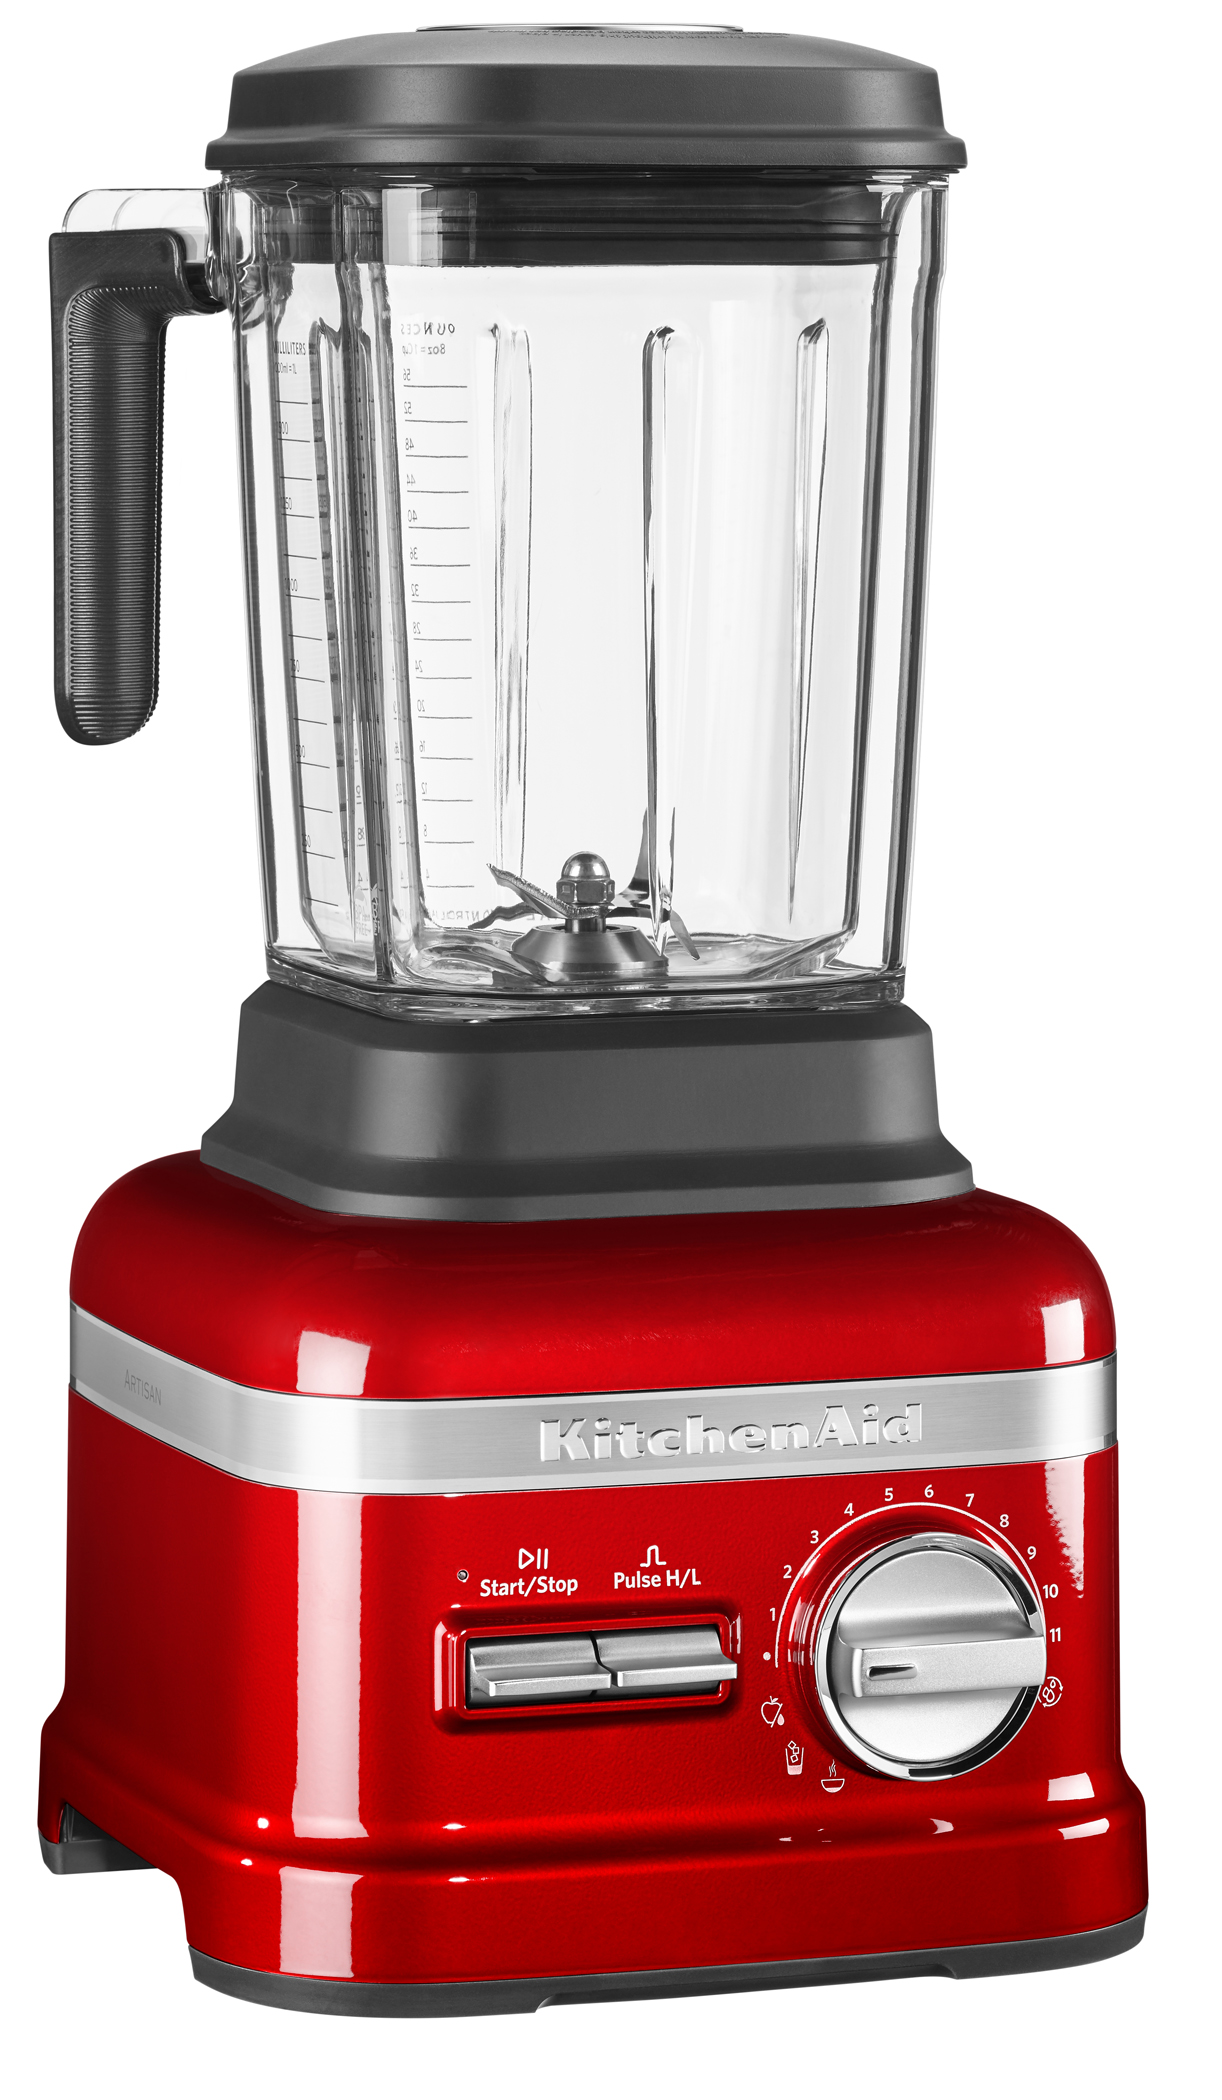 kitchenaid mixer artisan power plus blender. Black Bedroom Furniture Sets. Home Design Ideas